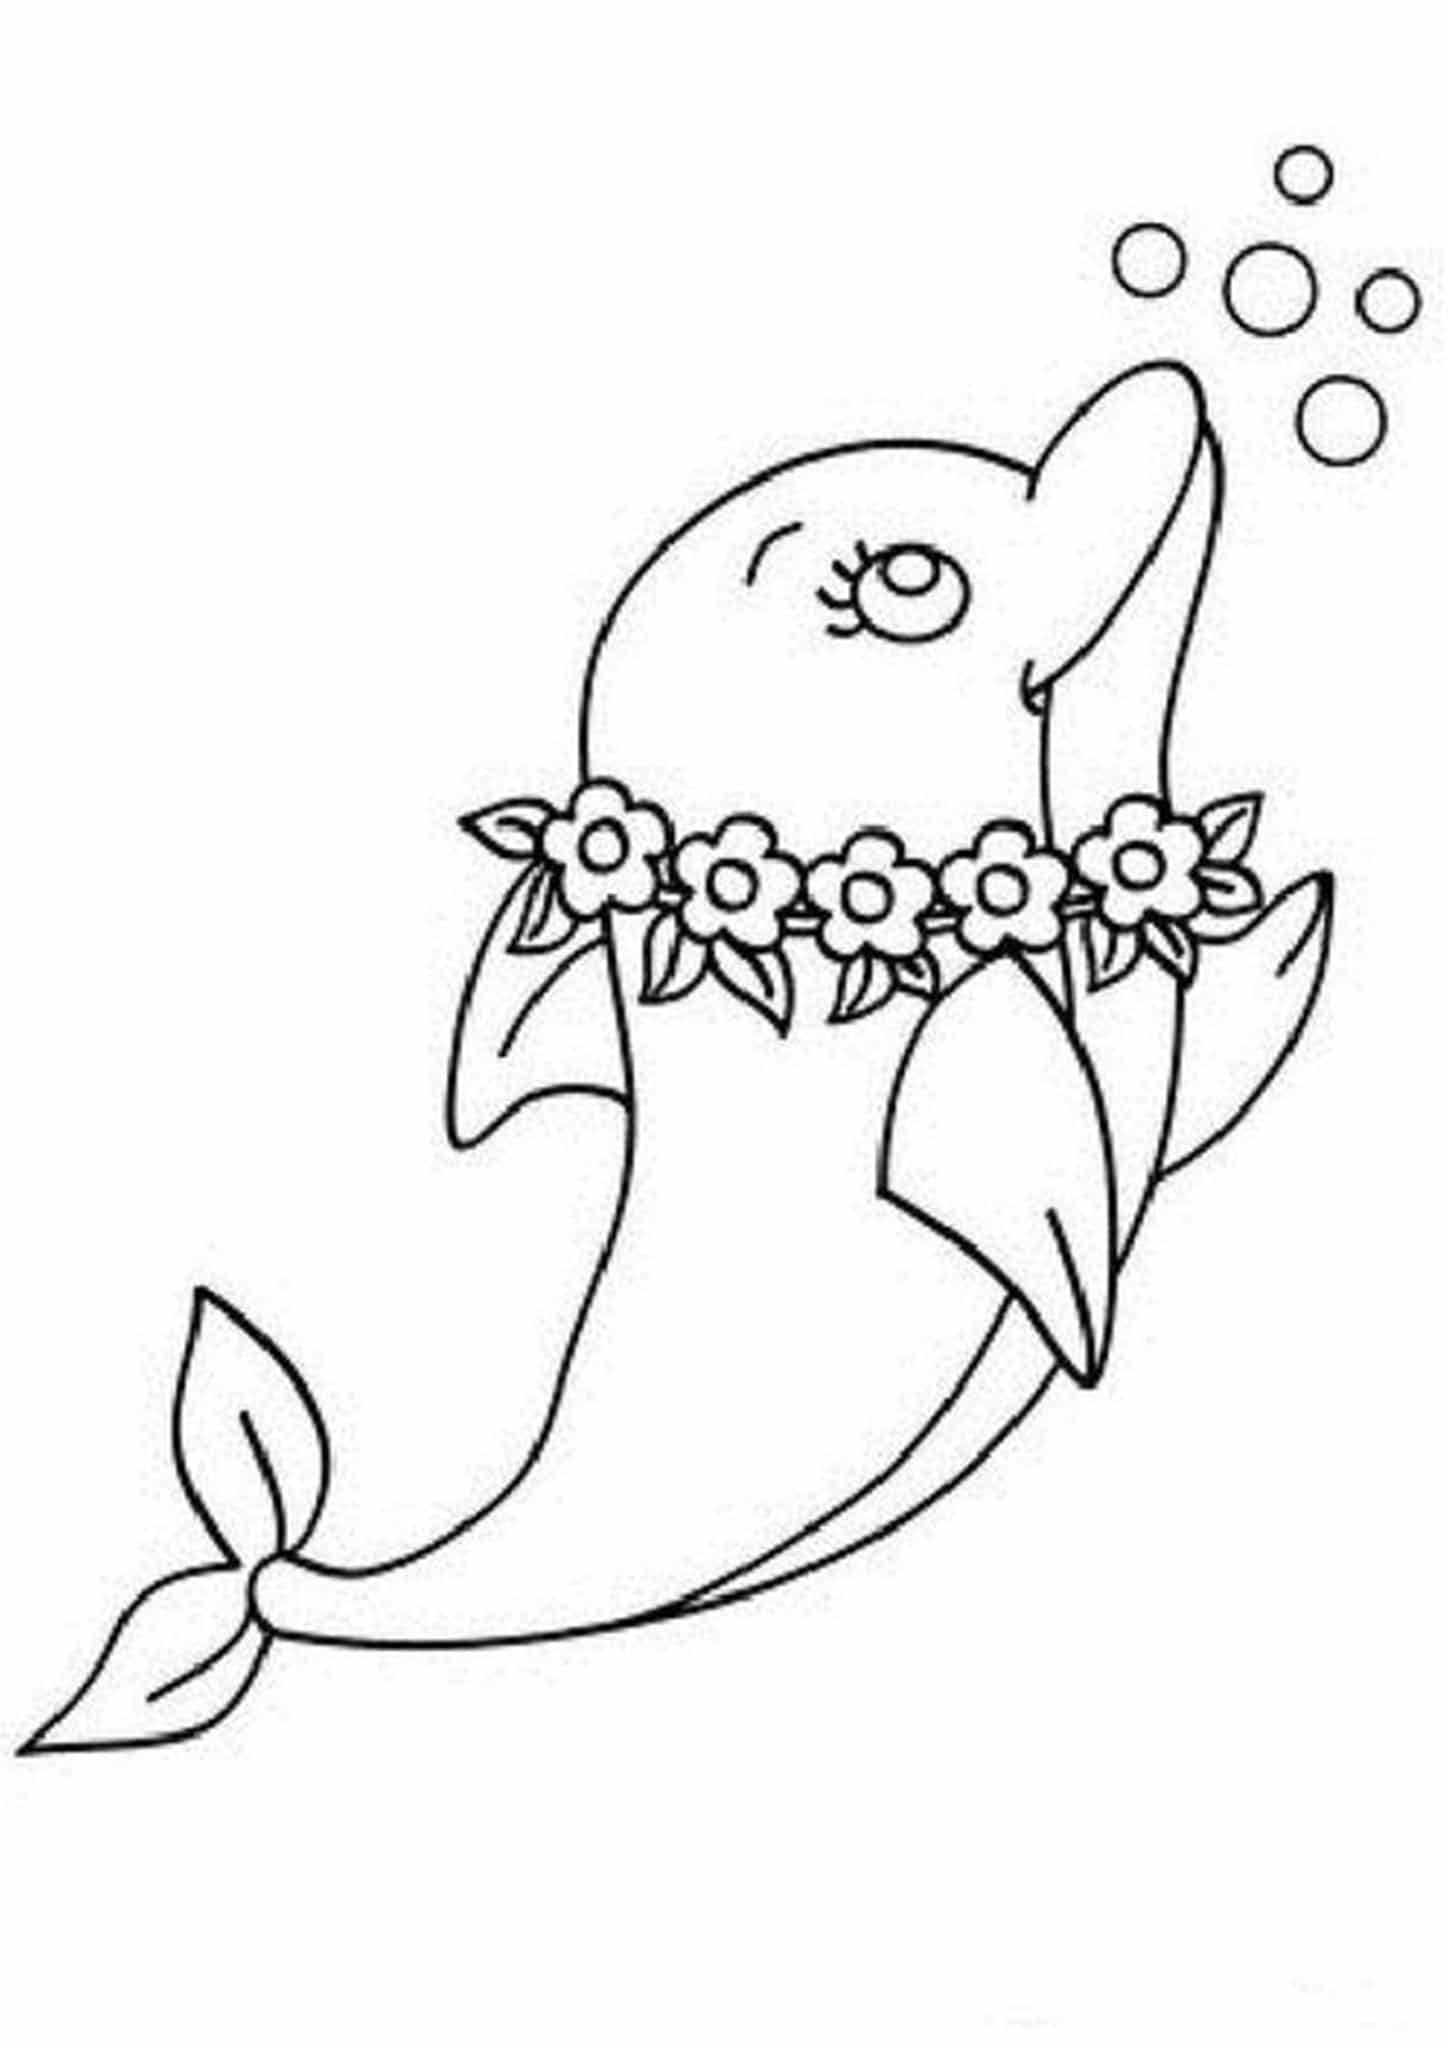 dolphin coloring pages free printable dolphin coloring pages download and print for free dolphin coloring printable pages free